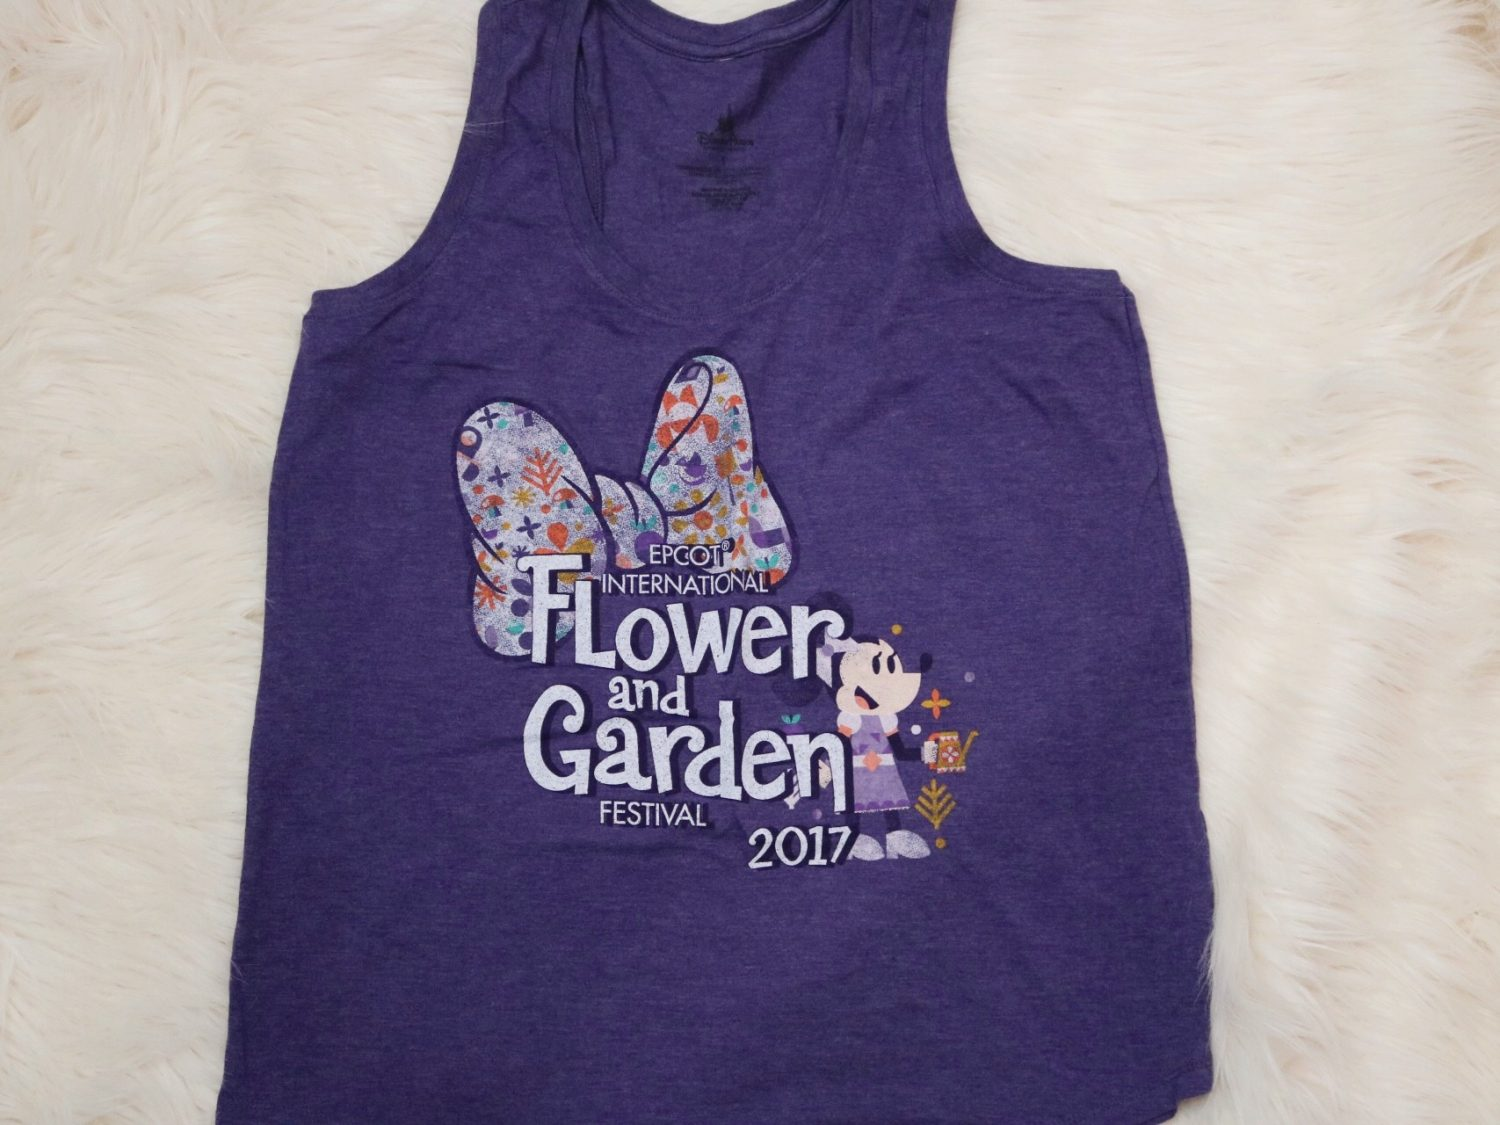 2017 Epcot International Flower and Garden Tank Top